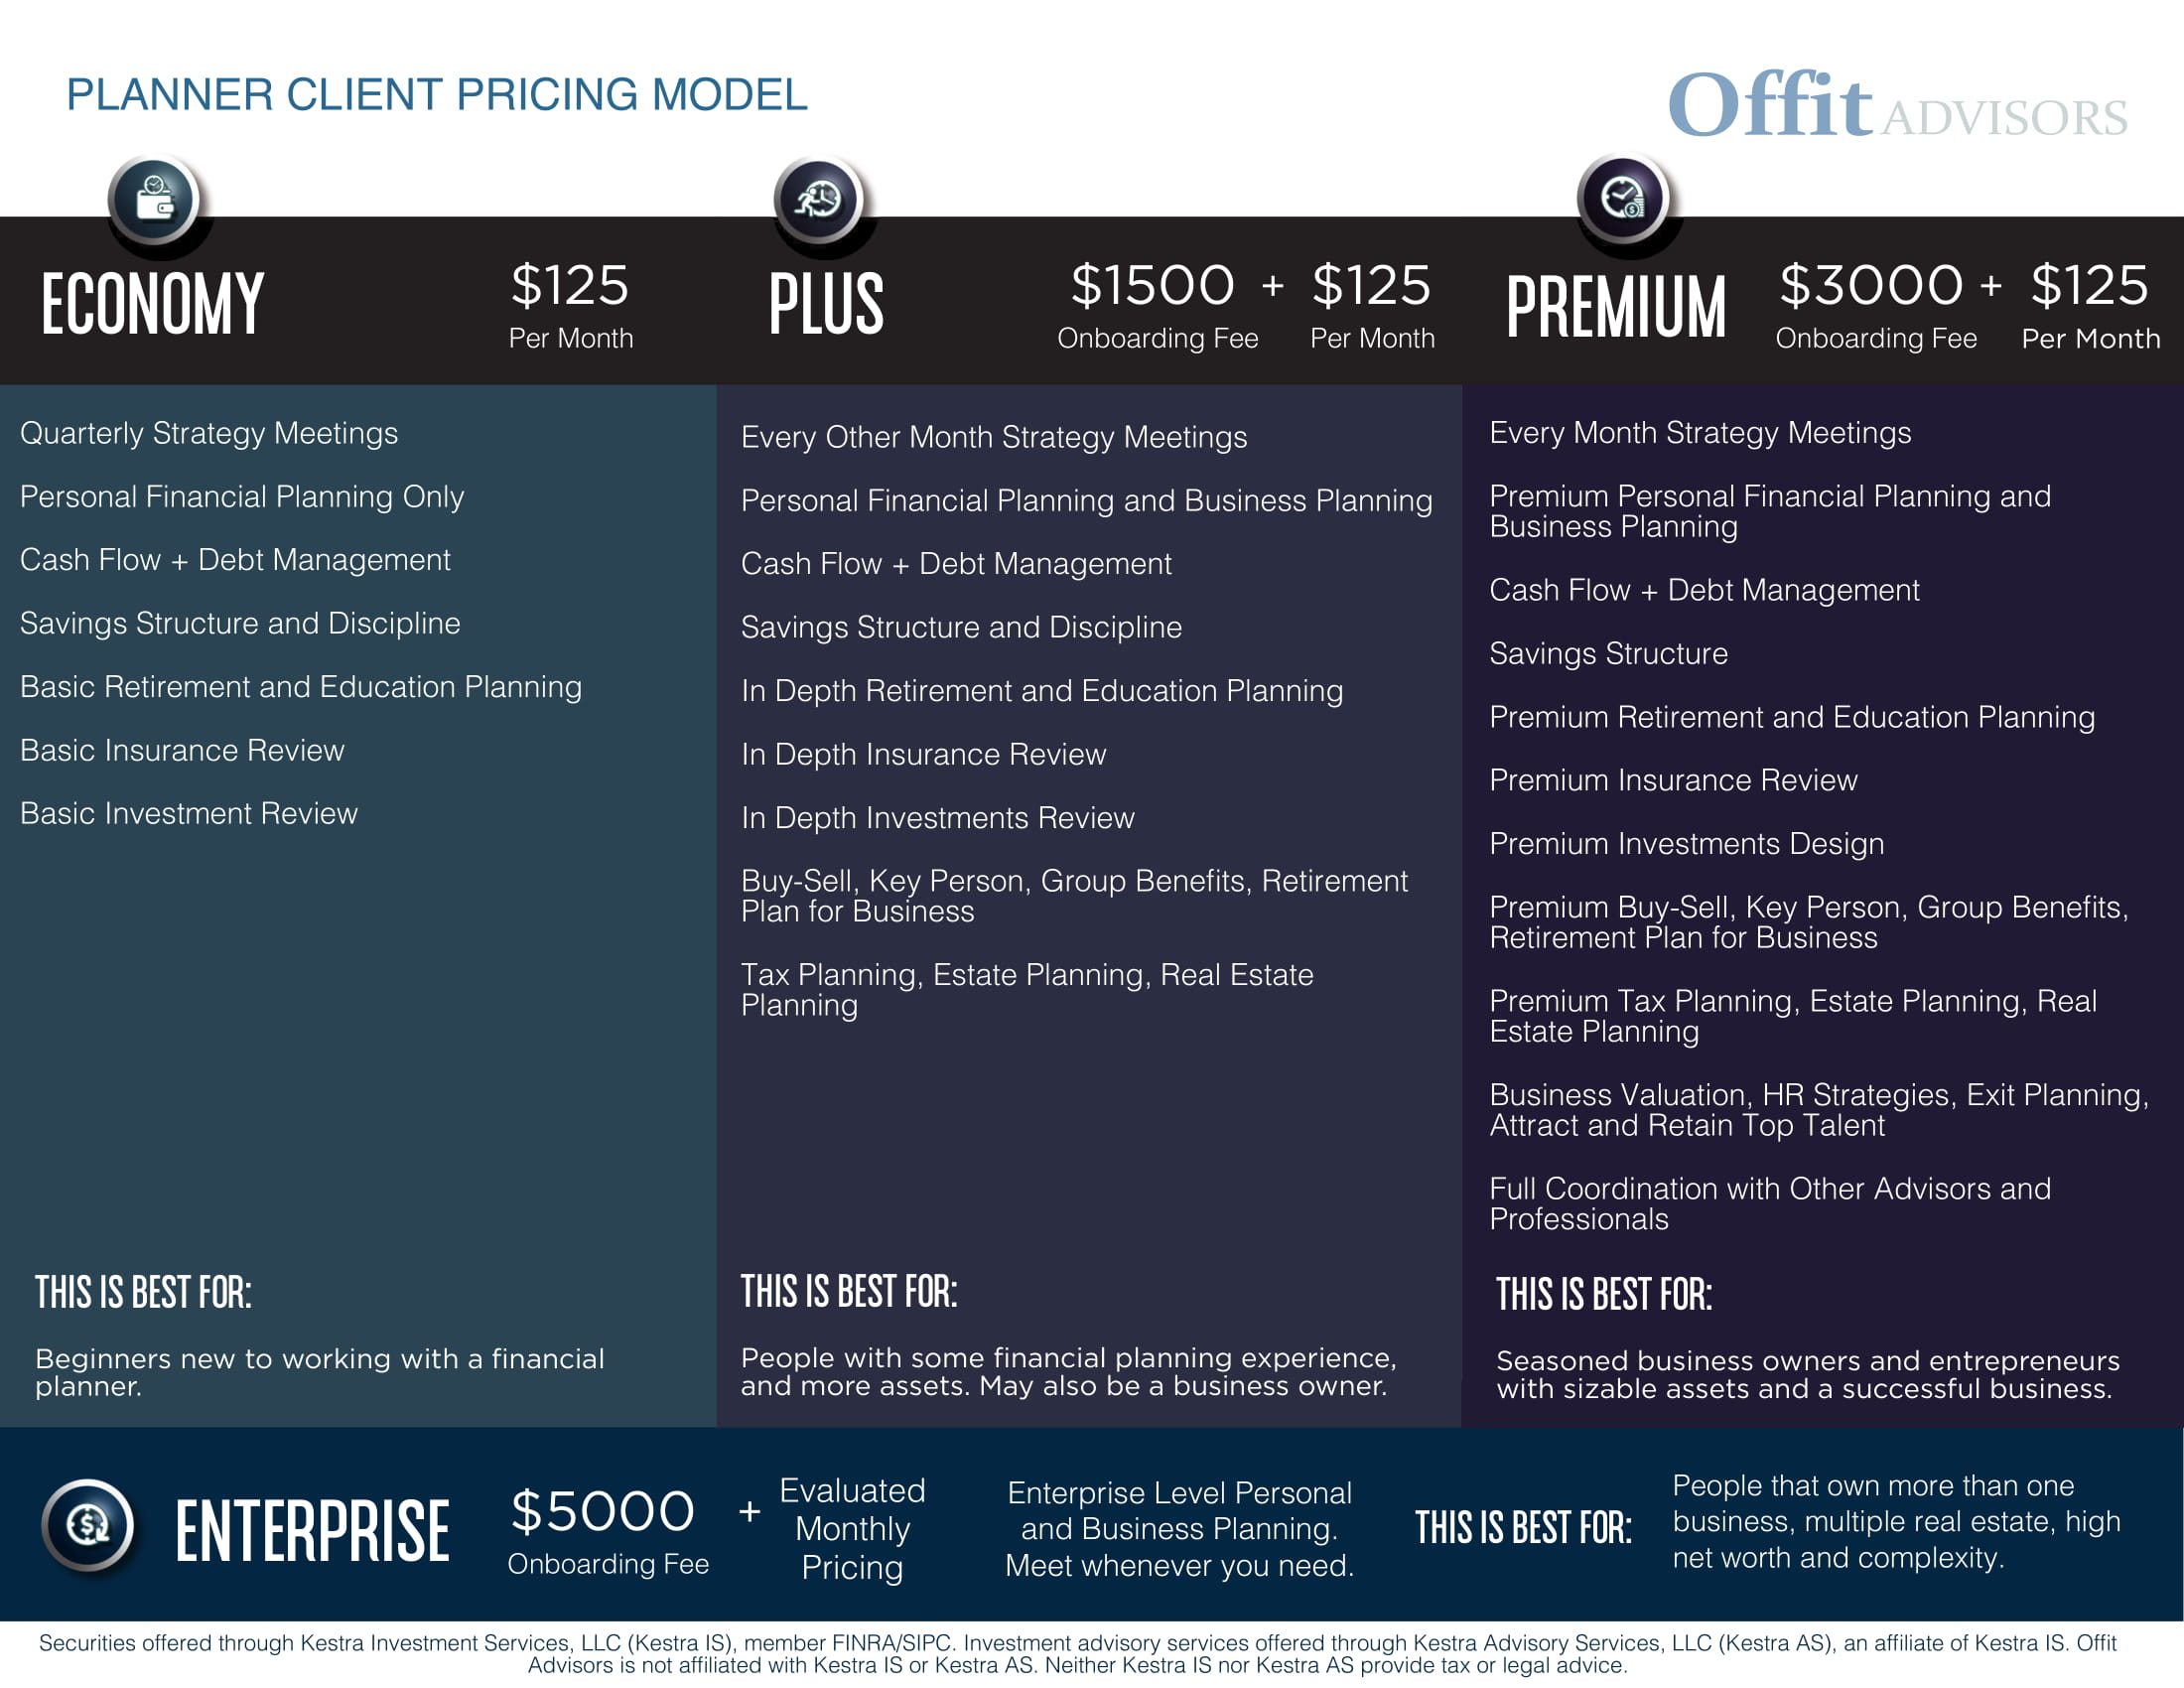 Planner Client Pricing Model (Update)-1.jpg